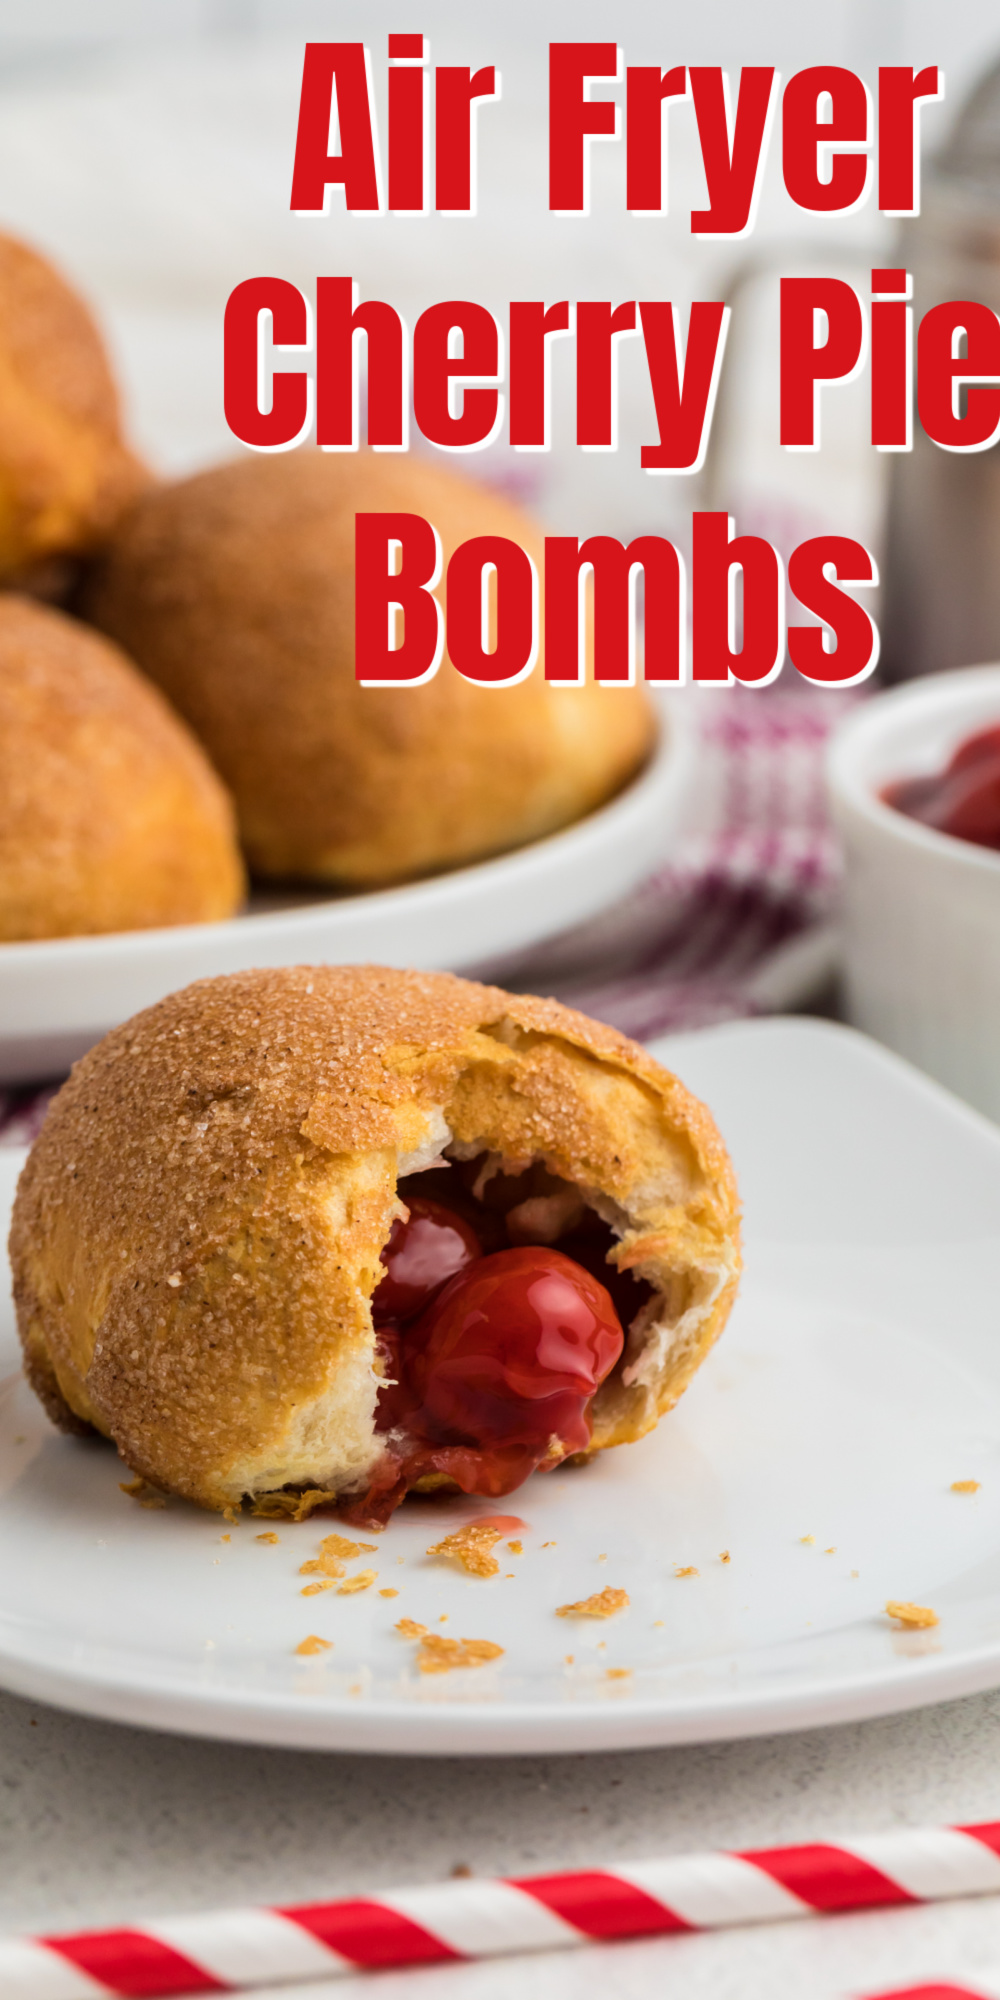 Made with just four easy ingredients, these Air Fryer Cherry Pie Bombs are simple and amazing! A few minutes of prep work is all you need! It's an easy air fryer dessert that the whole family enjoys.